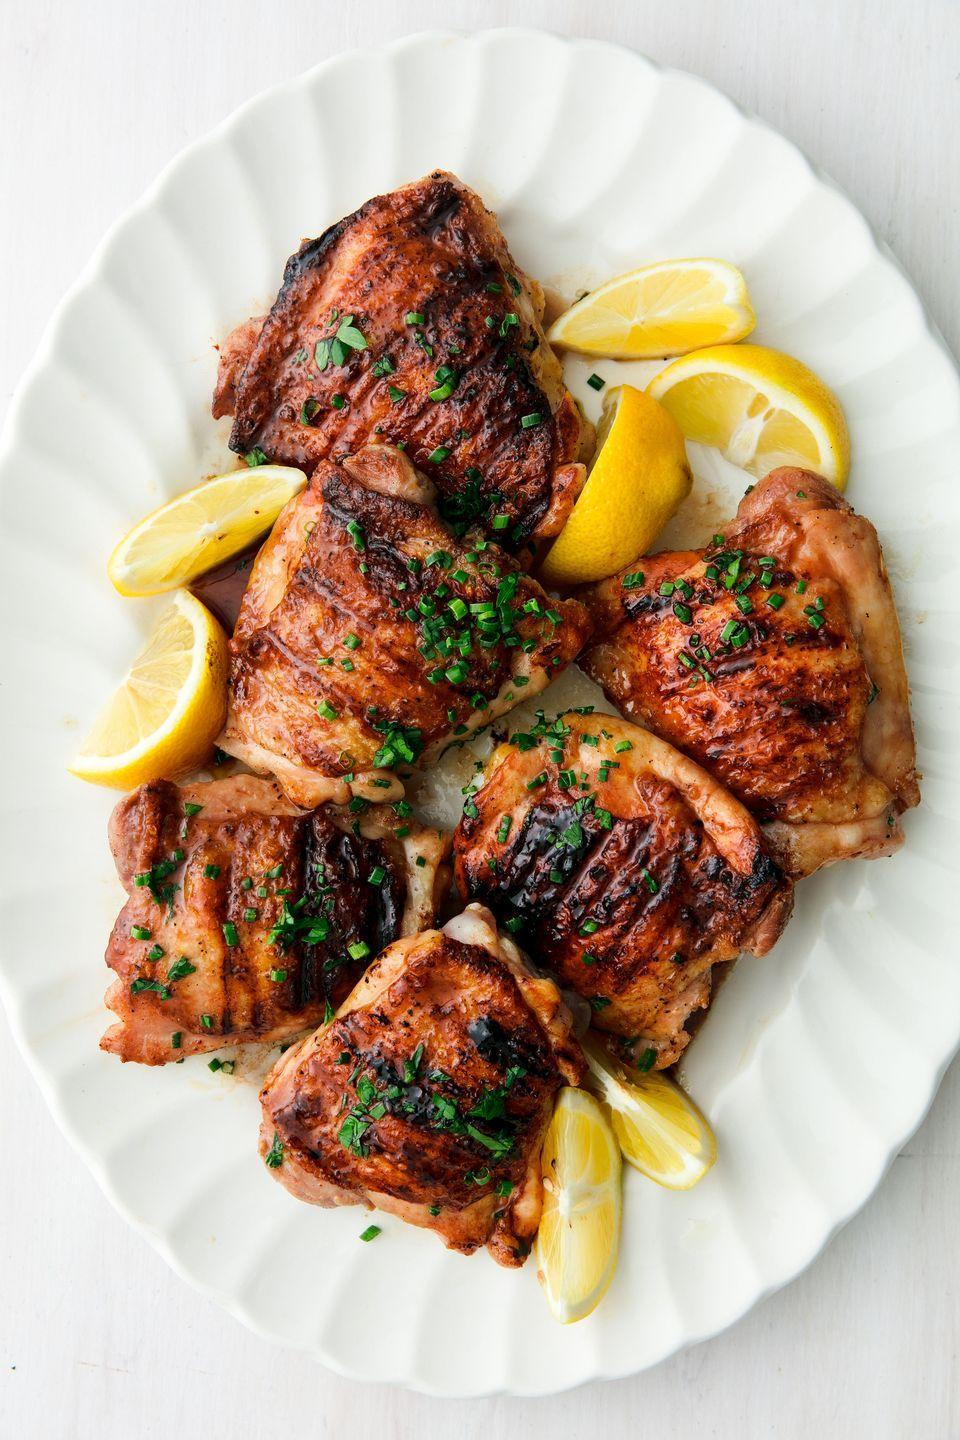 """<p>That honey-balsamic glaze, though. </p><p>Get the recipe from <a href=""""https://www.delish.com/cooking/recipe-ideas/a22022842/best-grilled-chicken-thighs-recipe/"""" rel=""""nofollow noopener"""" target=""""_blank"""" data-ylk=""""slk:Delish."""" class=""""link rapid-noclick-resp"""">Delish.</a></p>"""